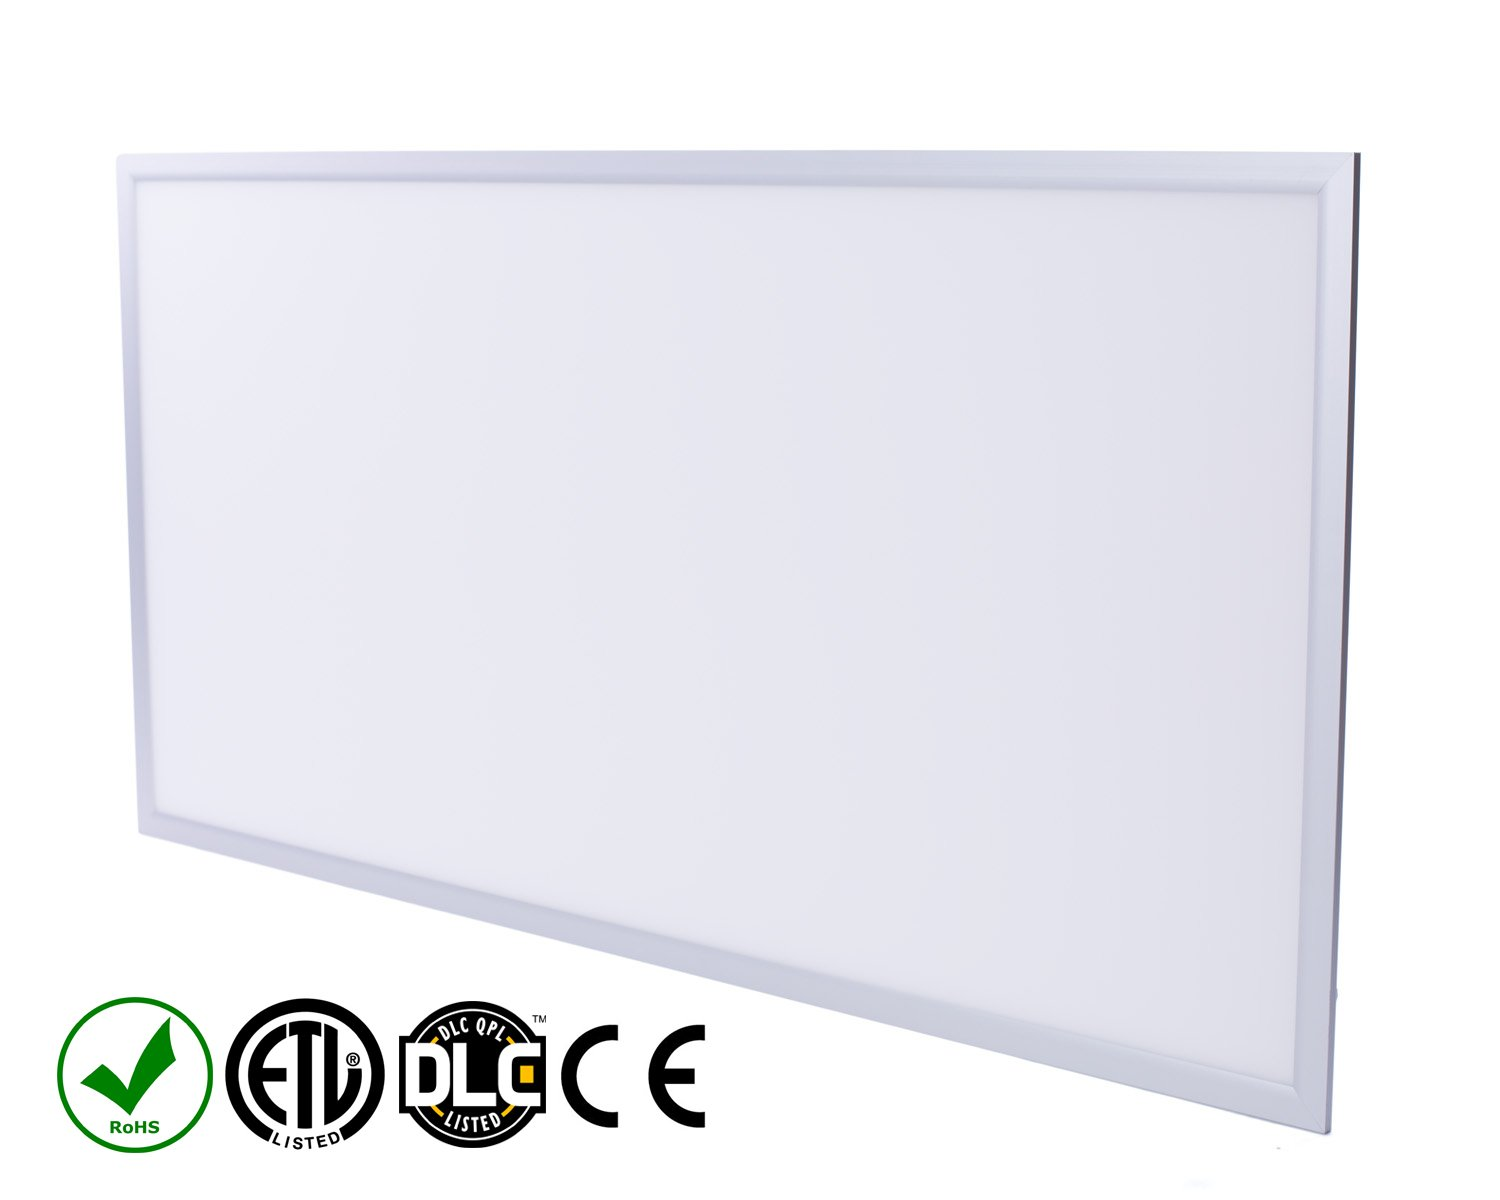 Fovitec StudioPRO Office Industrial Home Energy Saving LED Light Panel Fixture Ultra Thin Bright 5000K 55W - 2 x 4 feet